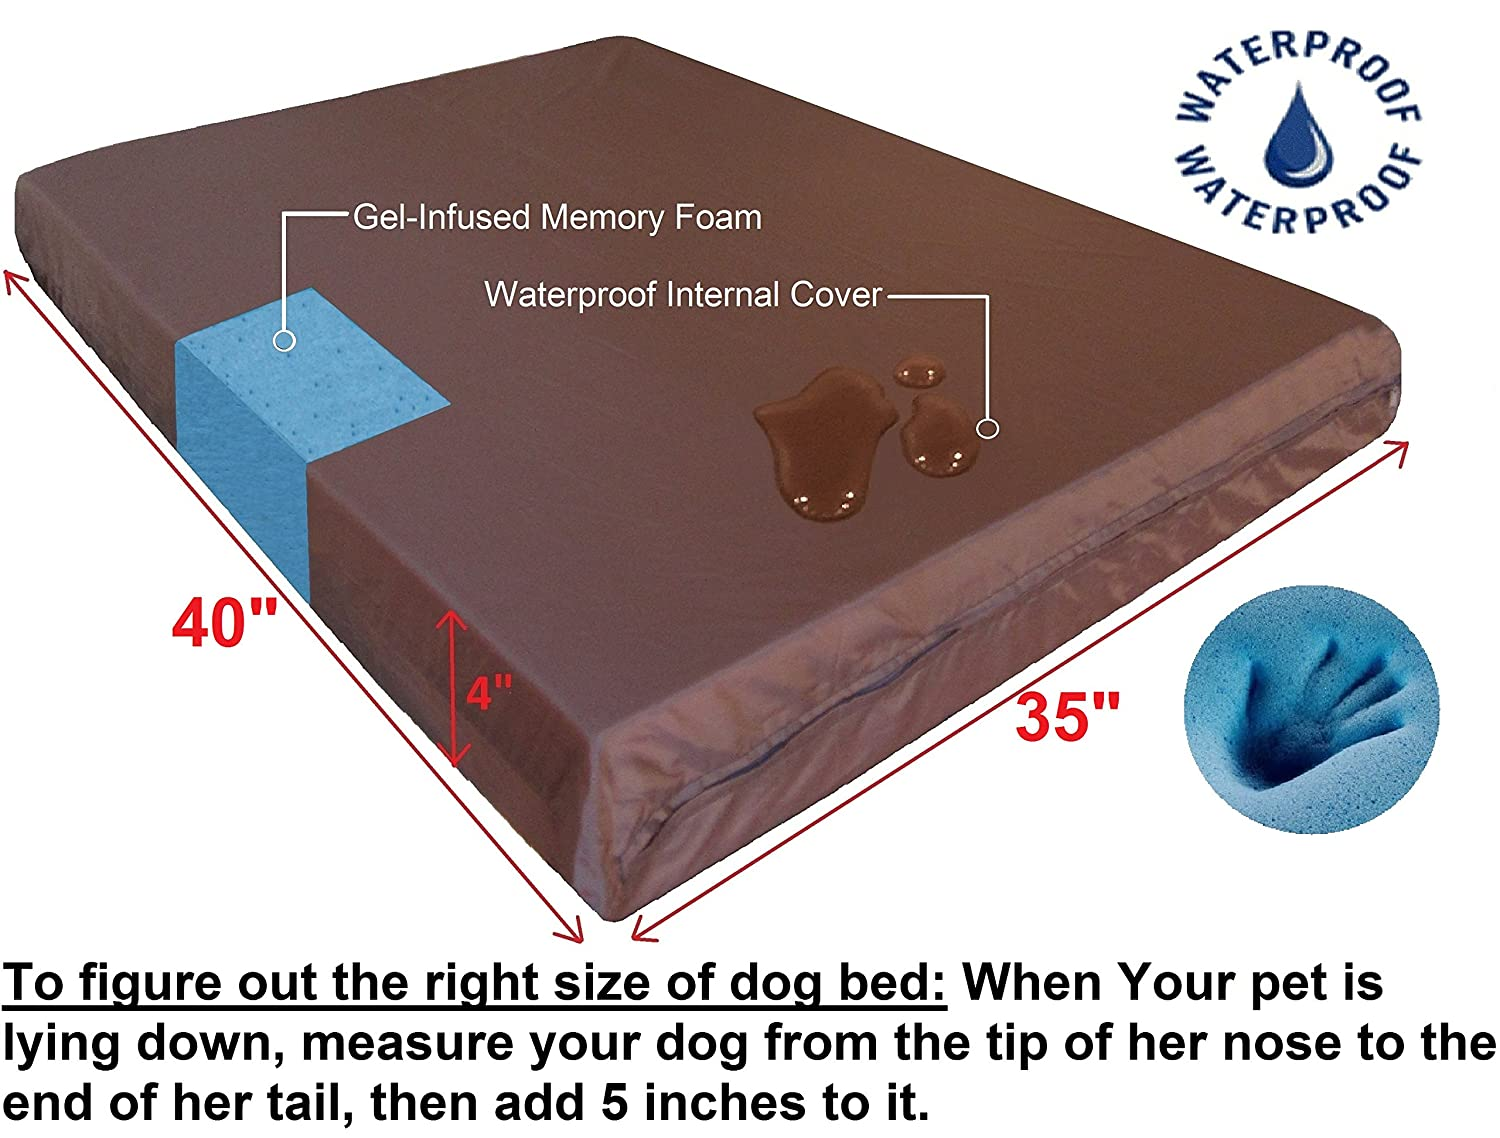 Dogbed4less Orthopedic Gel Infused Cooling Memory Foam Dog Bed for Small, Medium to Large Pet, Waterproof Liner with External Suede Cover and Extra Bonus External Case – 7 Sizes